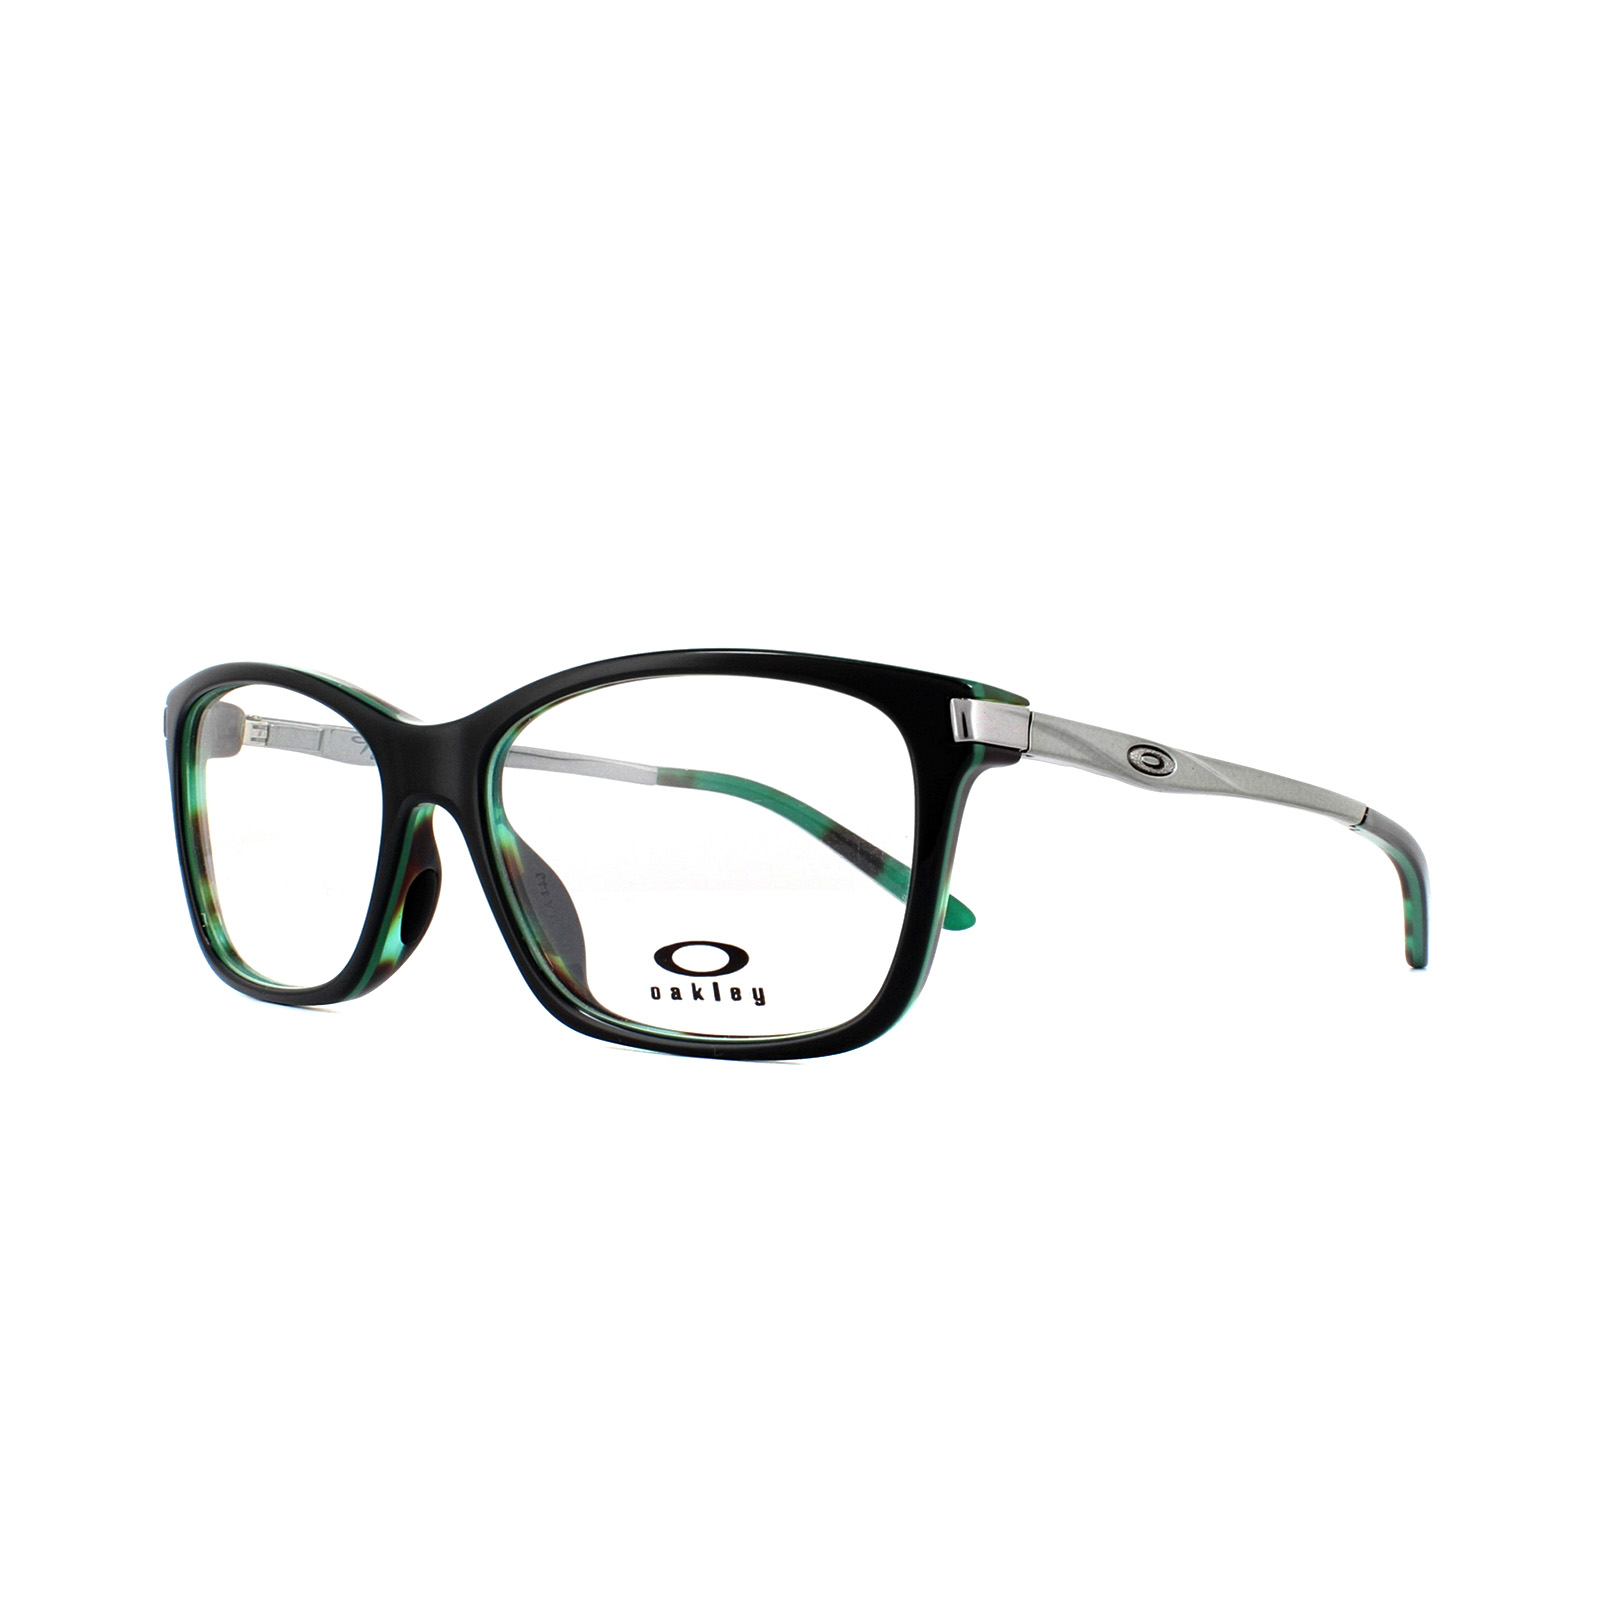 b33fbb7657 Sentinel Oakley Glasses Frames Nine-To-Five OX1127-02 Green Tortoise 52mm  Womens